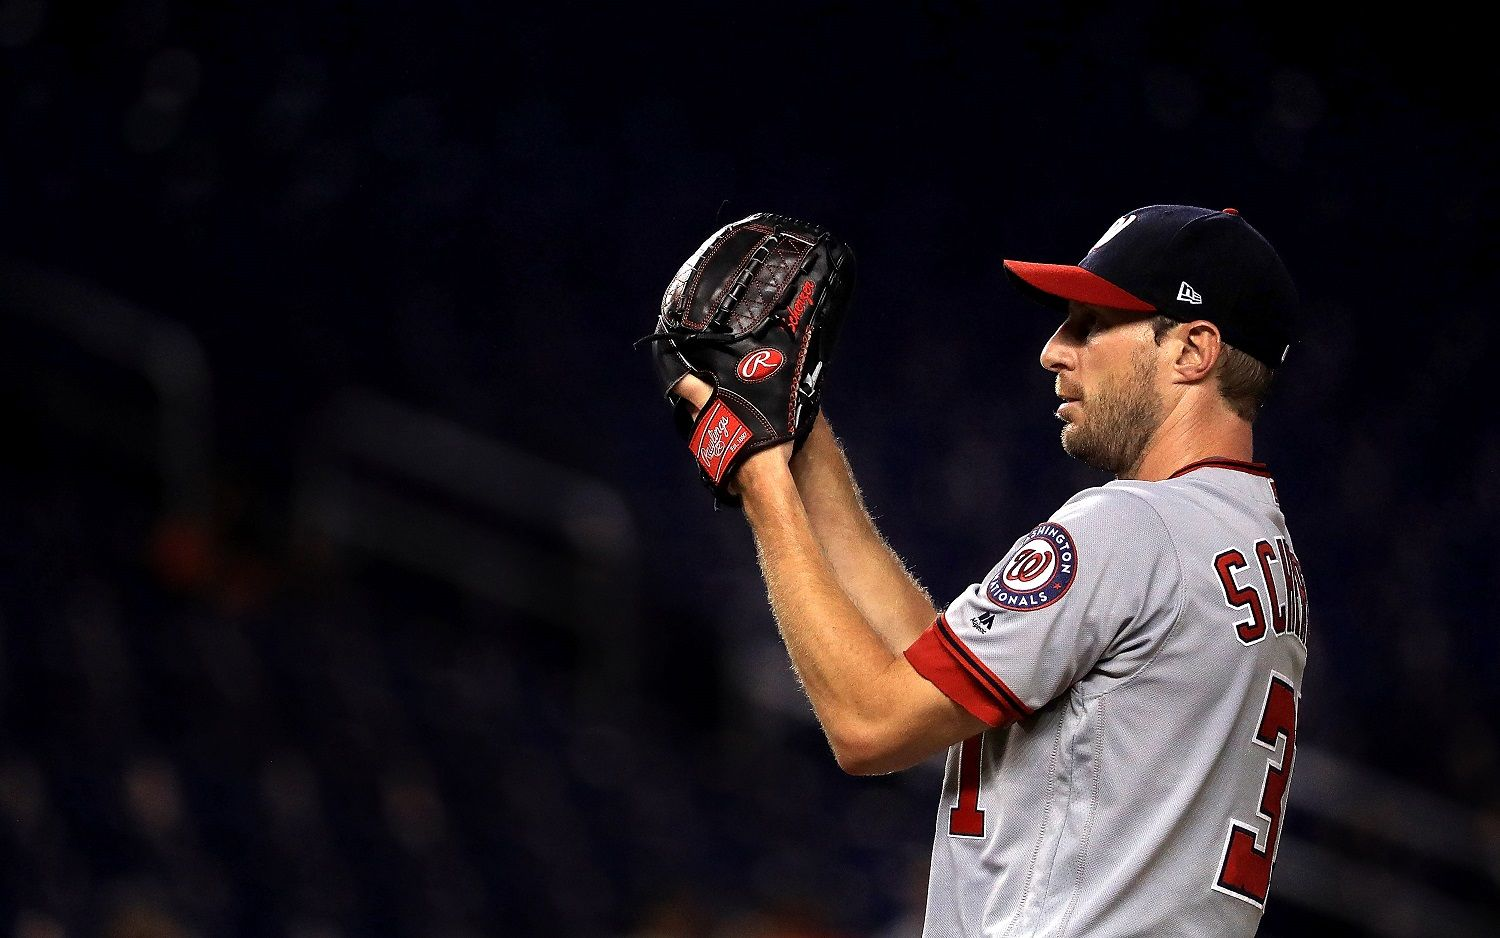 MIAMI, FL - AUGUST 01:  Max Scherzer #31 of the Washington Nationals pitches during a game against the Miami Marlins at Marlins Park on August 1, 2017 in Miami, Florida.  (Photo by Mike Ehrmann/Getty Images)